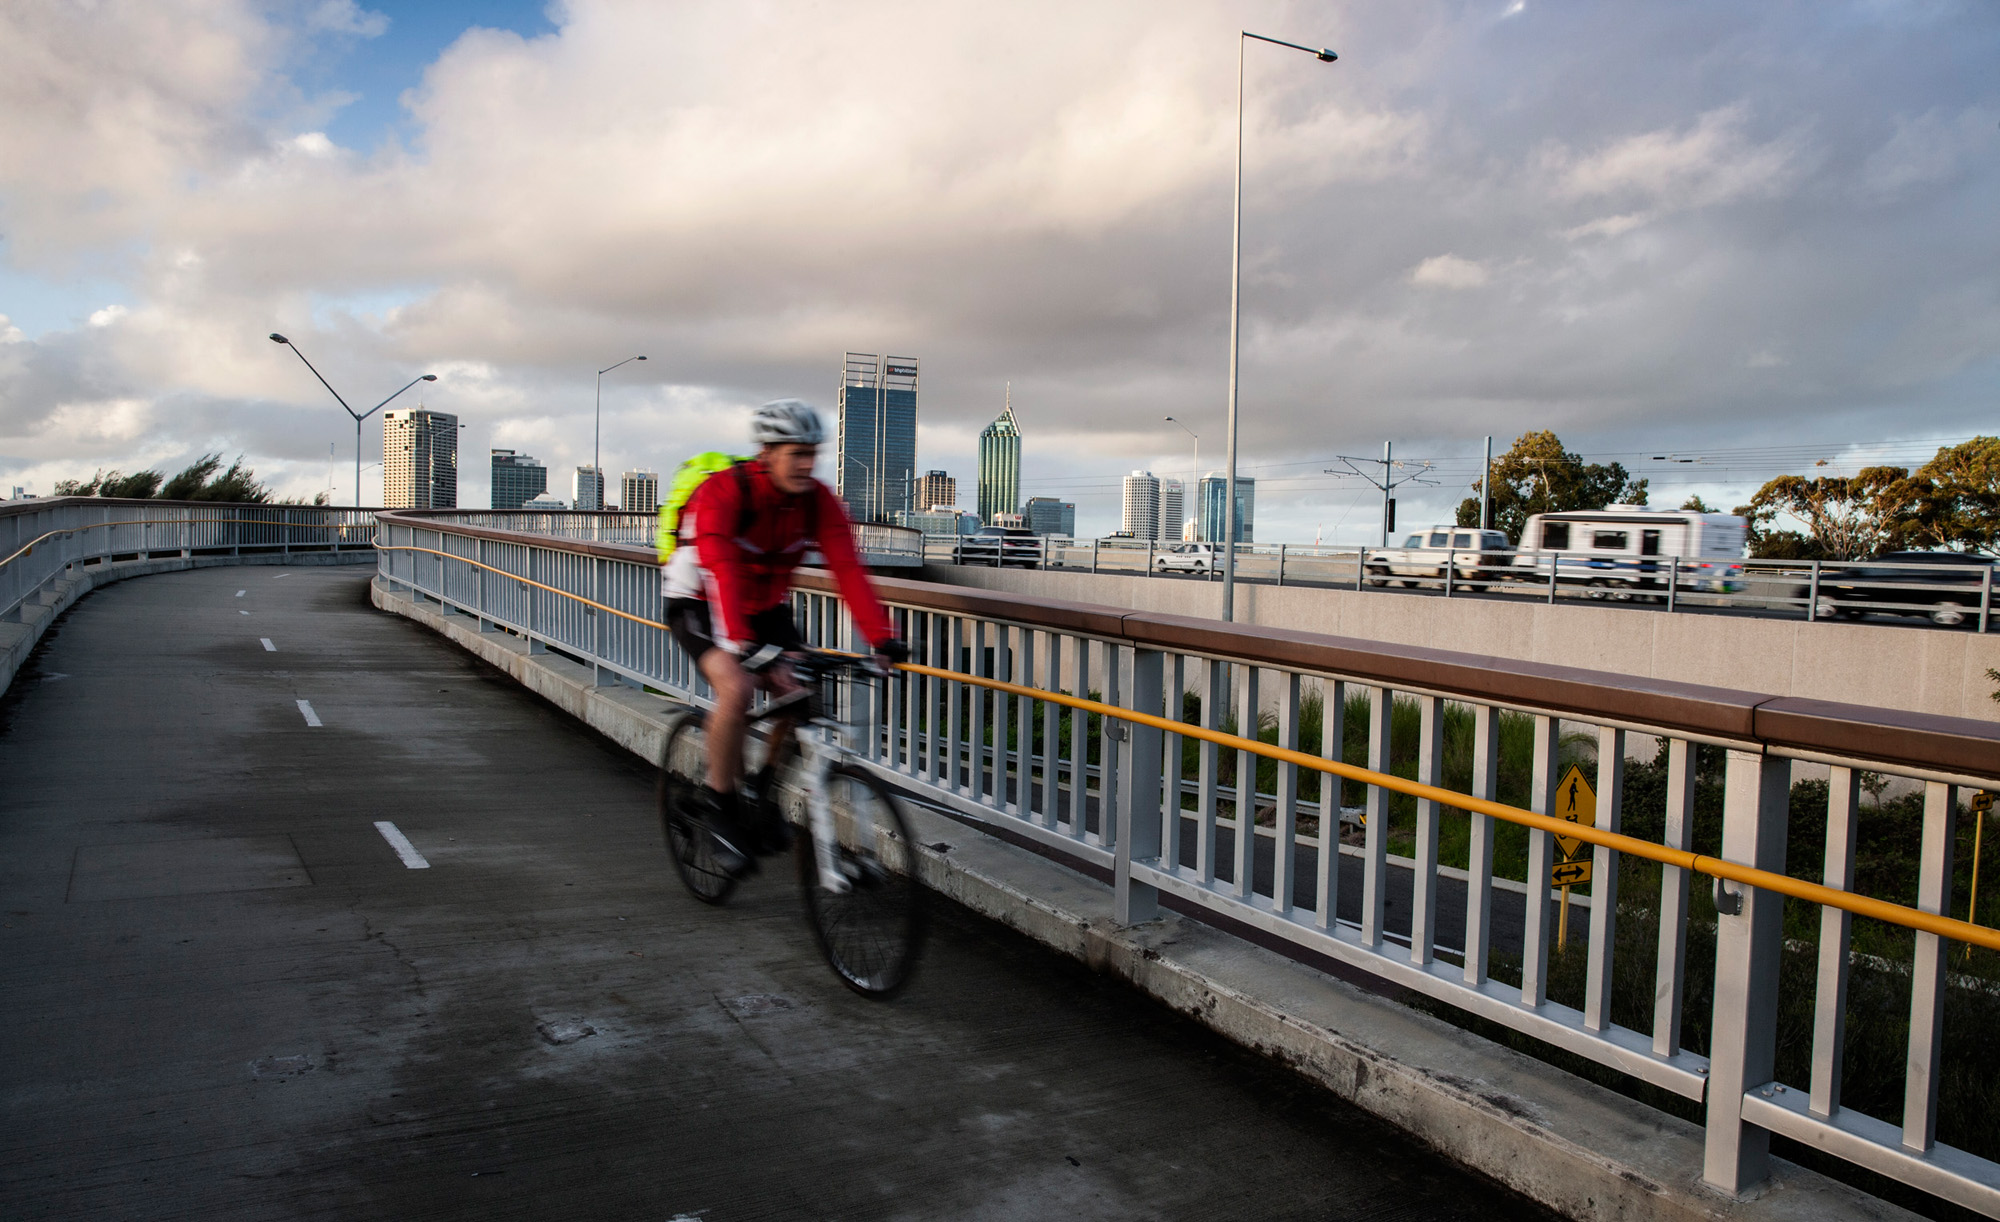 Man cycling on bike path beside freeway